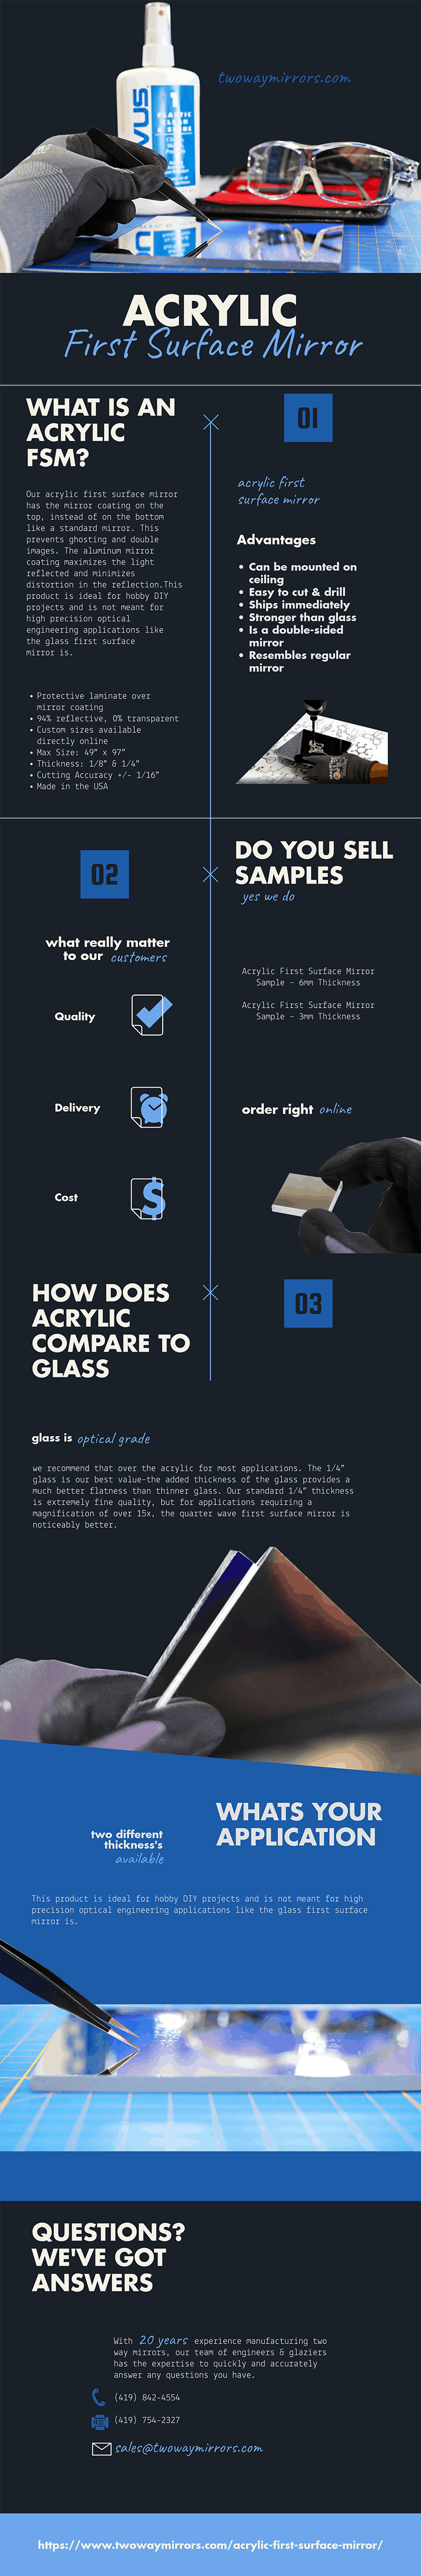 acrylic first surface mirror infographic